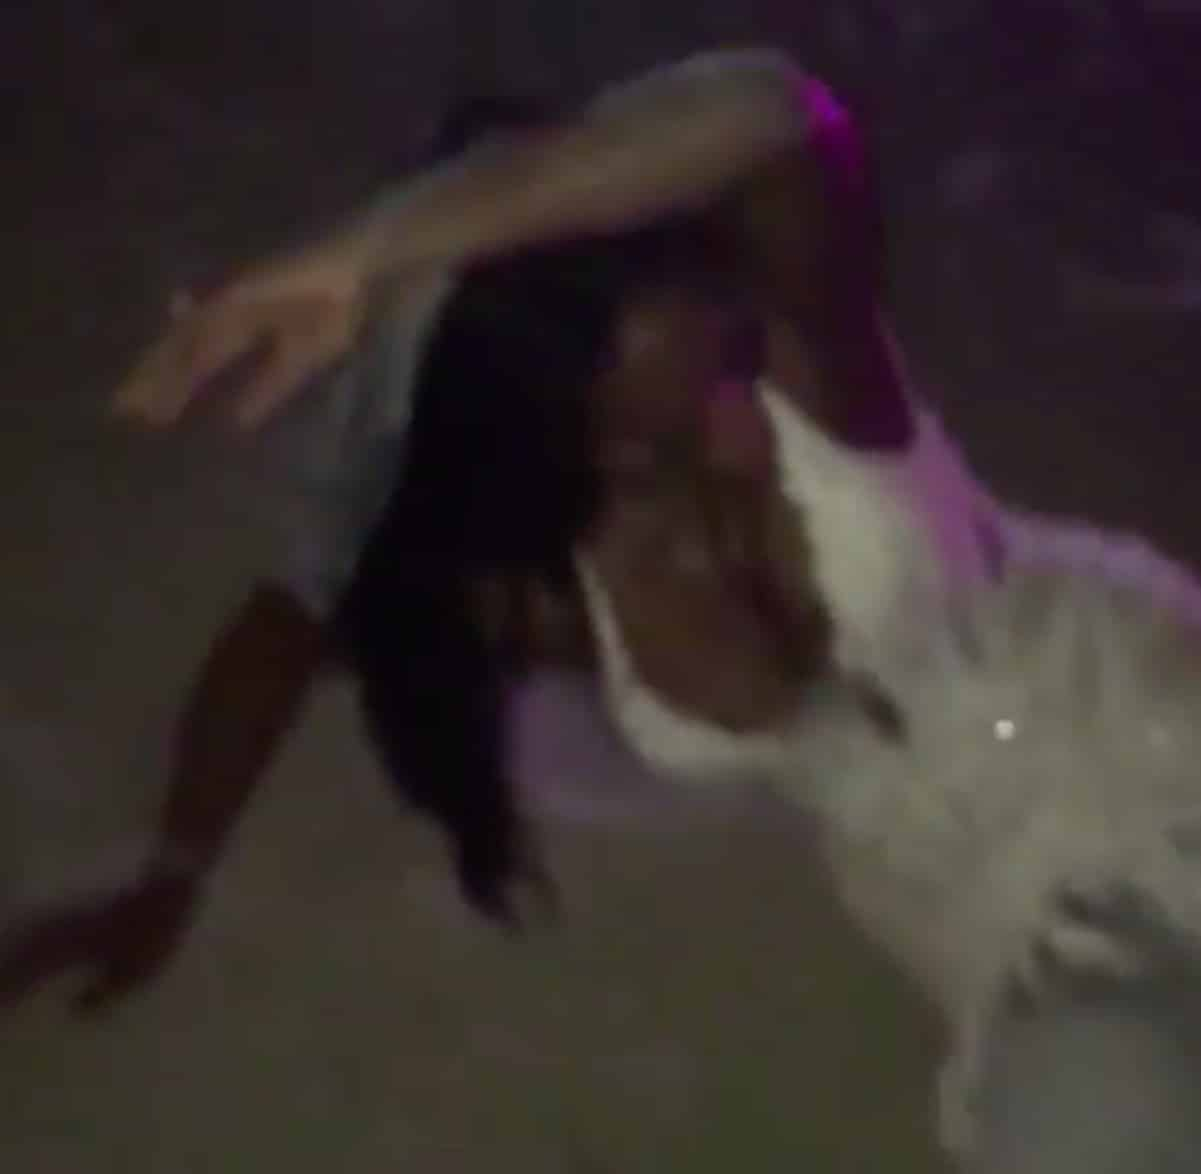 kenya moore drunk wedding night video